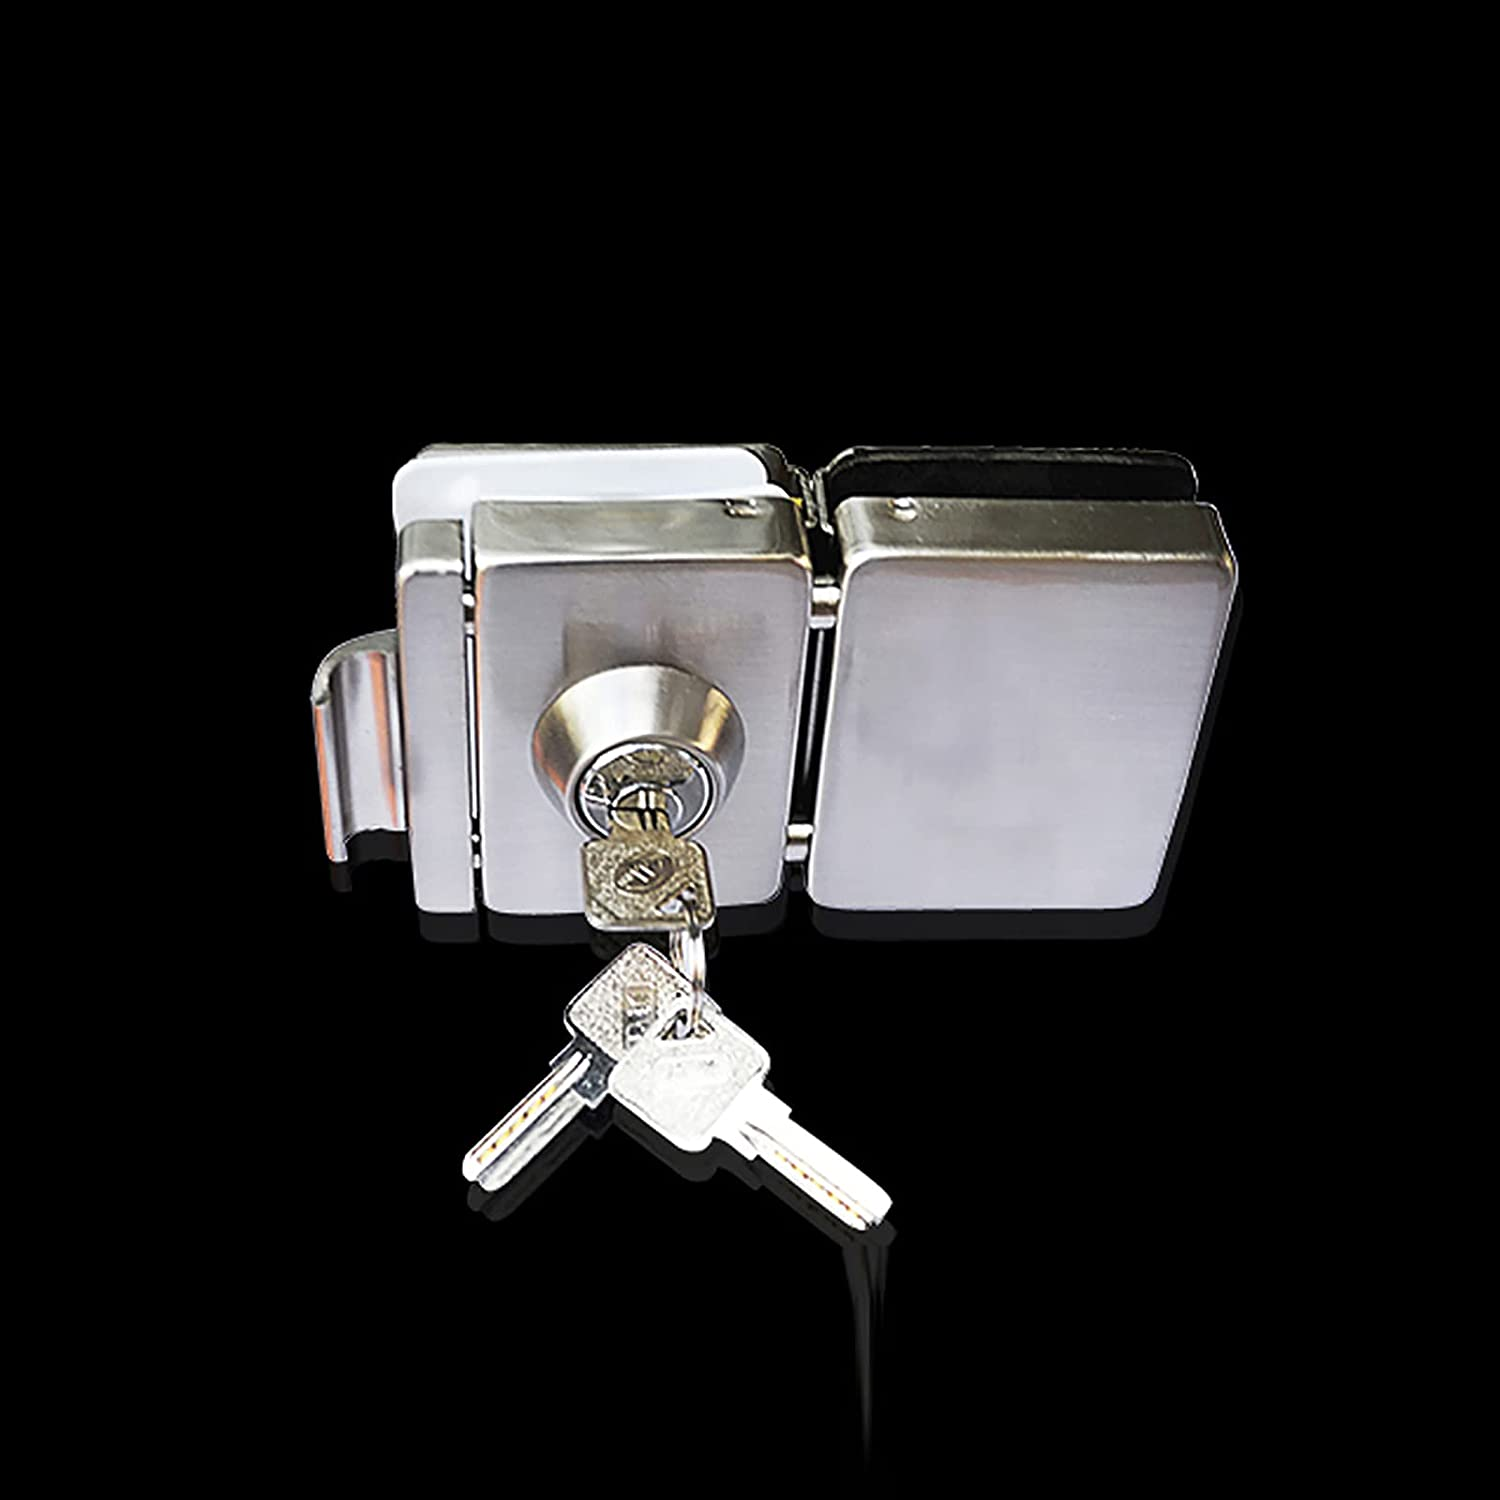 Outlet sale Popular popular feature Stainless Steel Durable Metal 8-12mm Secur Glass Door Anti-Theft